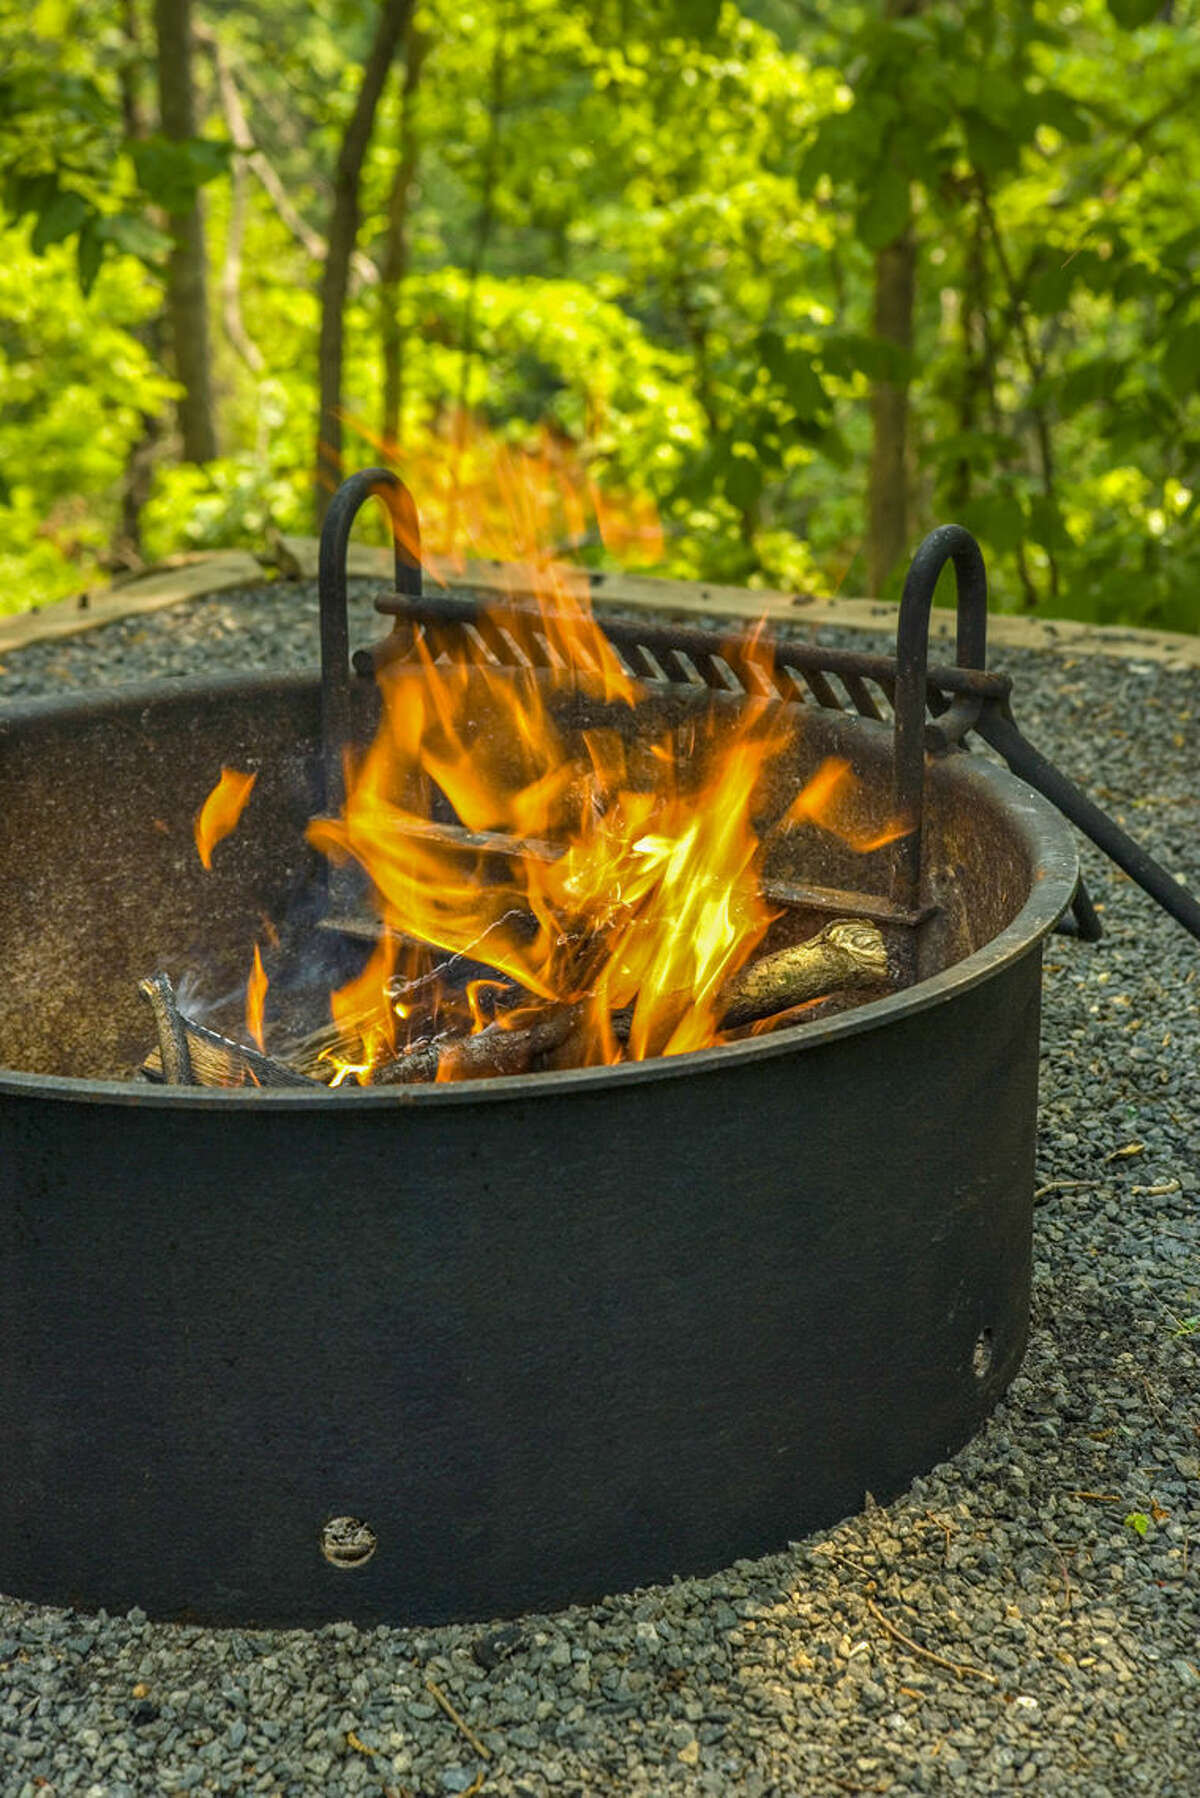 A fire pit should be at least 10 feet away from any structure or combustible surface. Unless the owner's manual says it's OK, do not put a fire pit on grass, a wood deck or in an enclosed deck/porch.